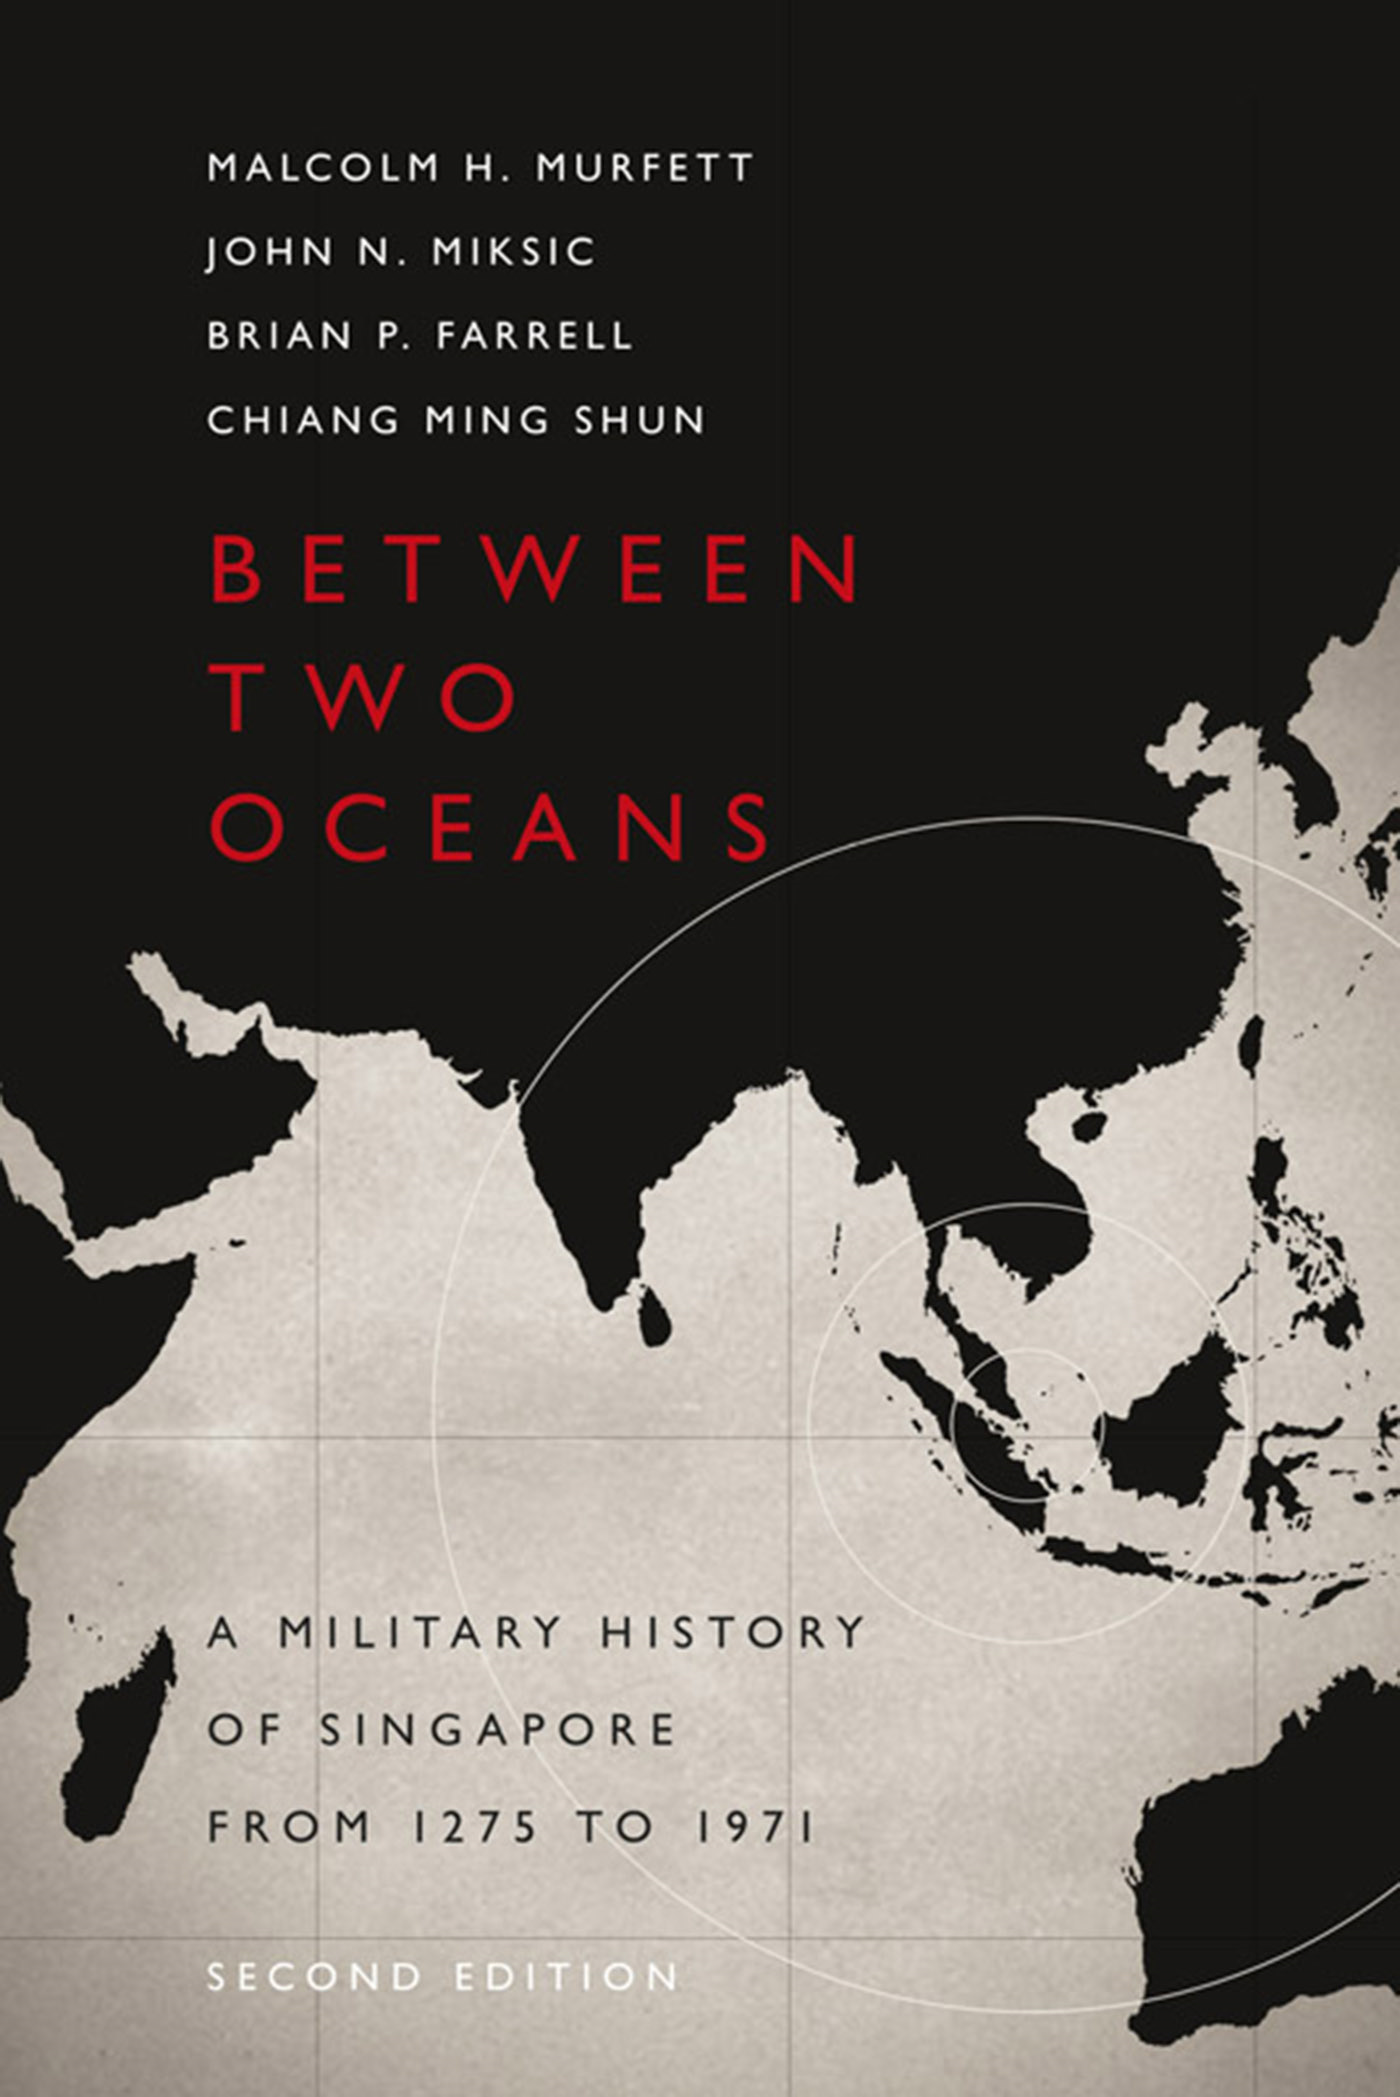 Between 2 Oceans (2nd Edn)